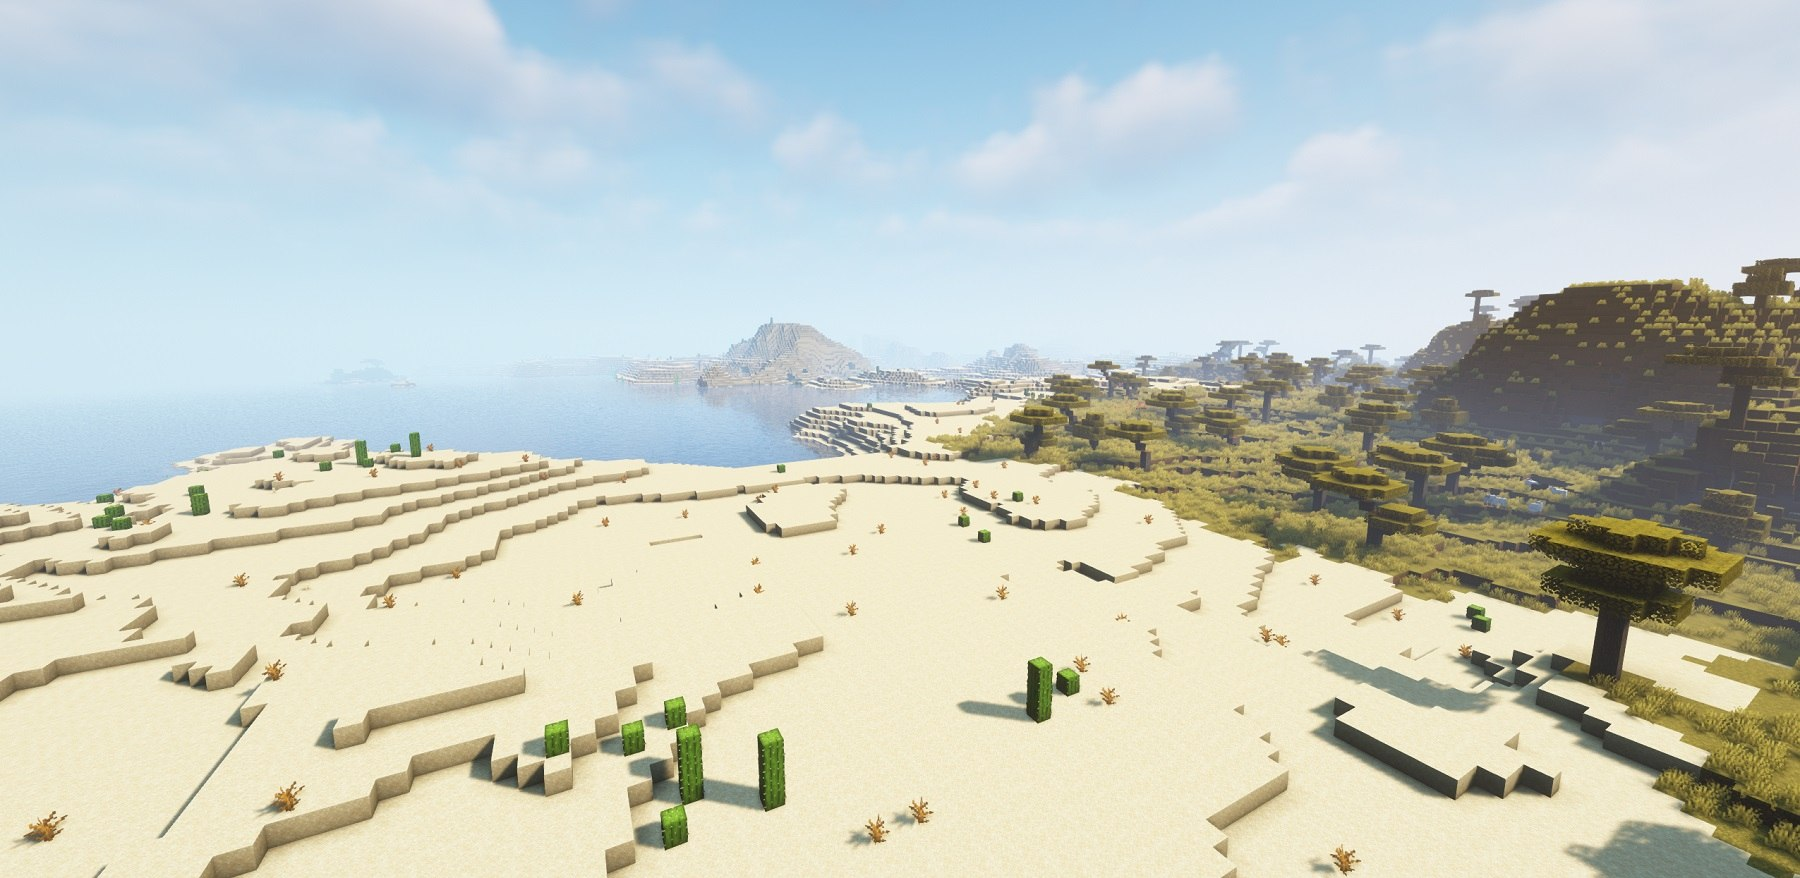 Complementary Shaders Minecraft shadery BSL edit 4